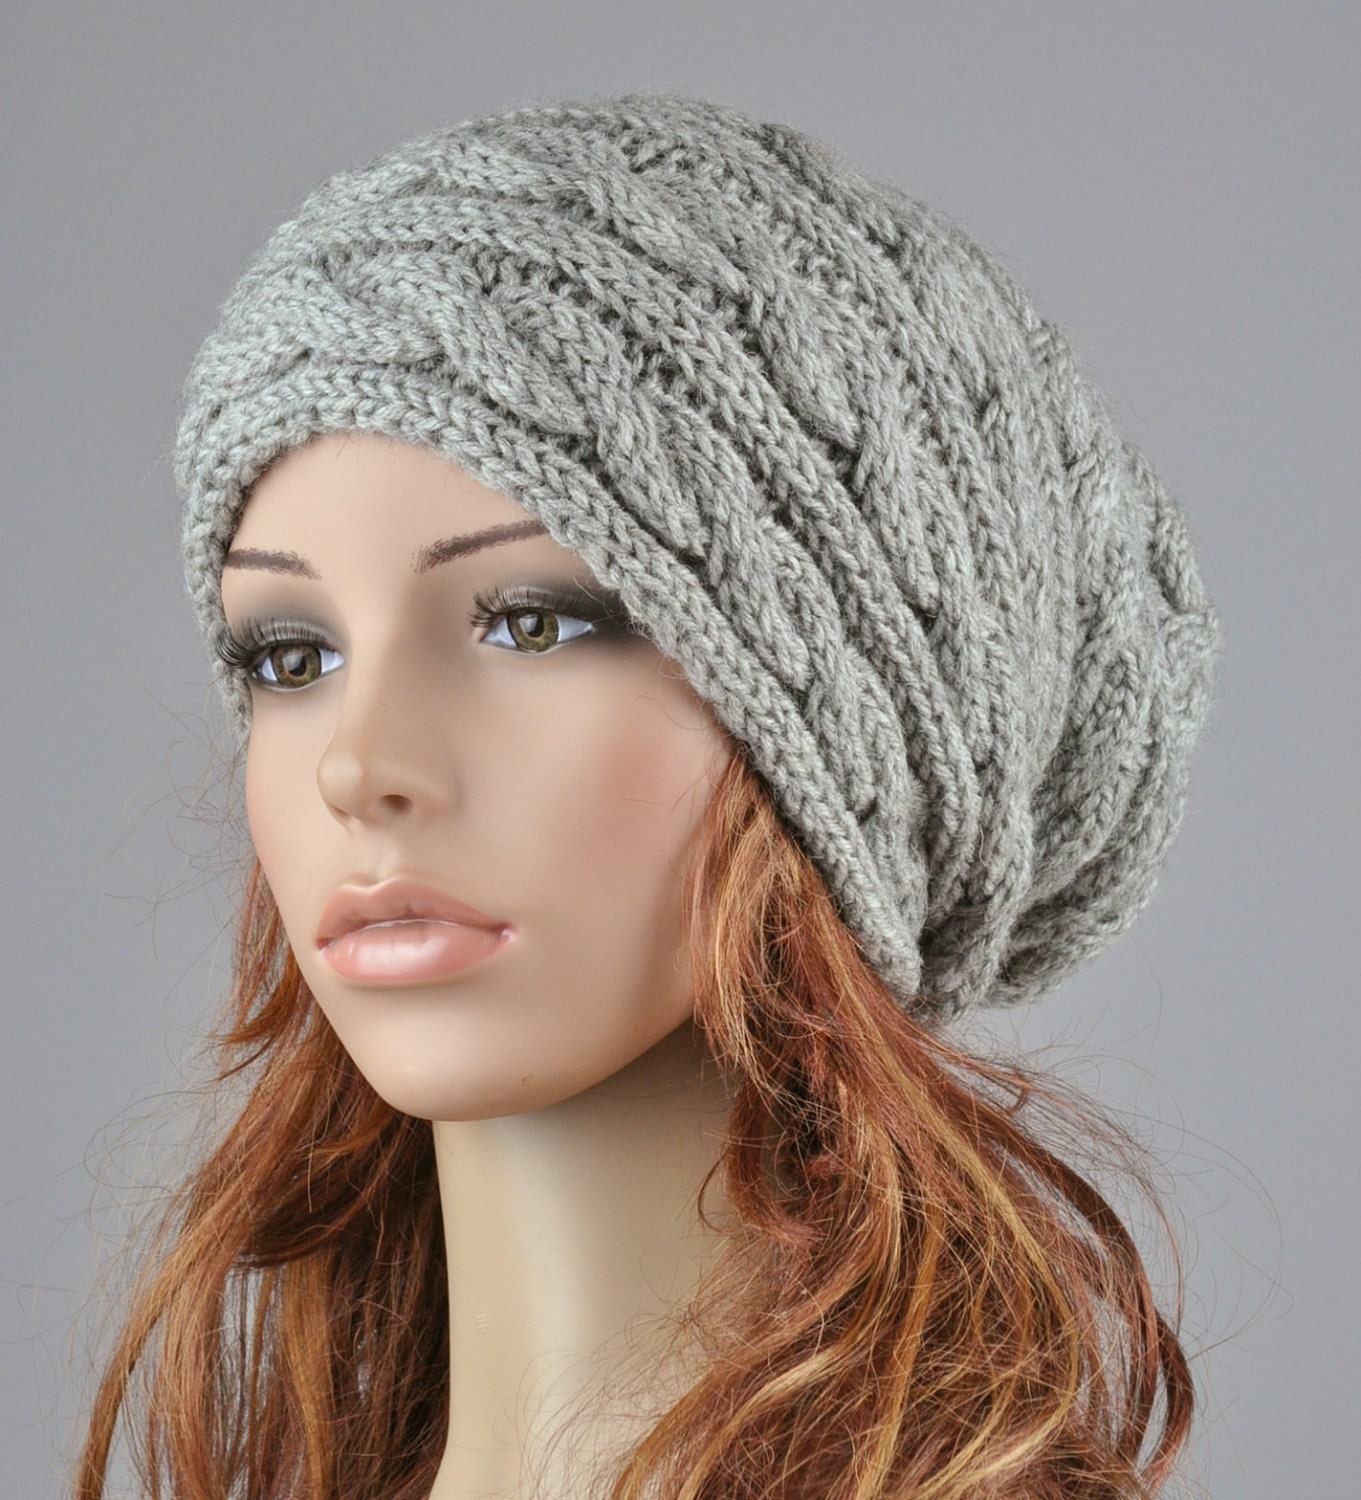 Hand Knitted Hat Patterns : Hand knit hat Grey hat slouchy hat cable pattern hat